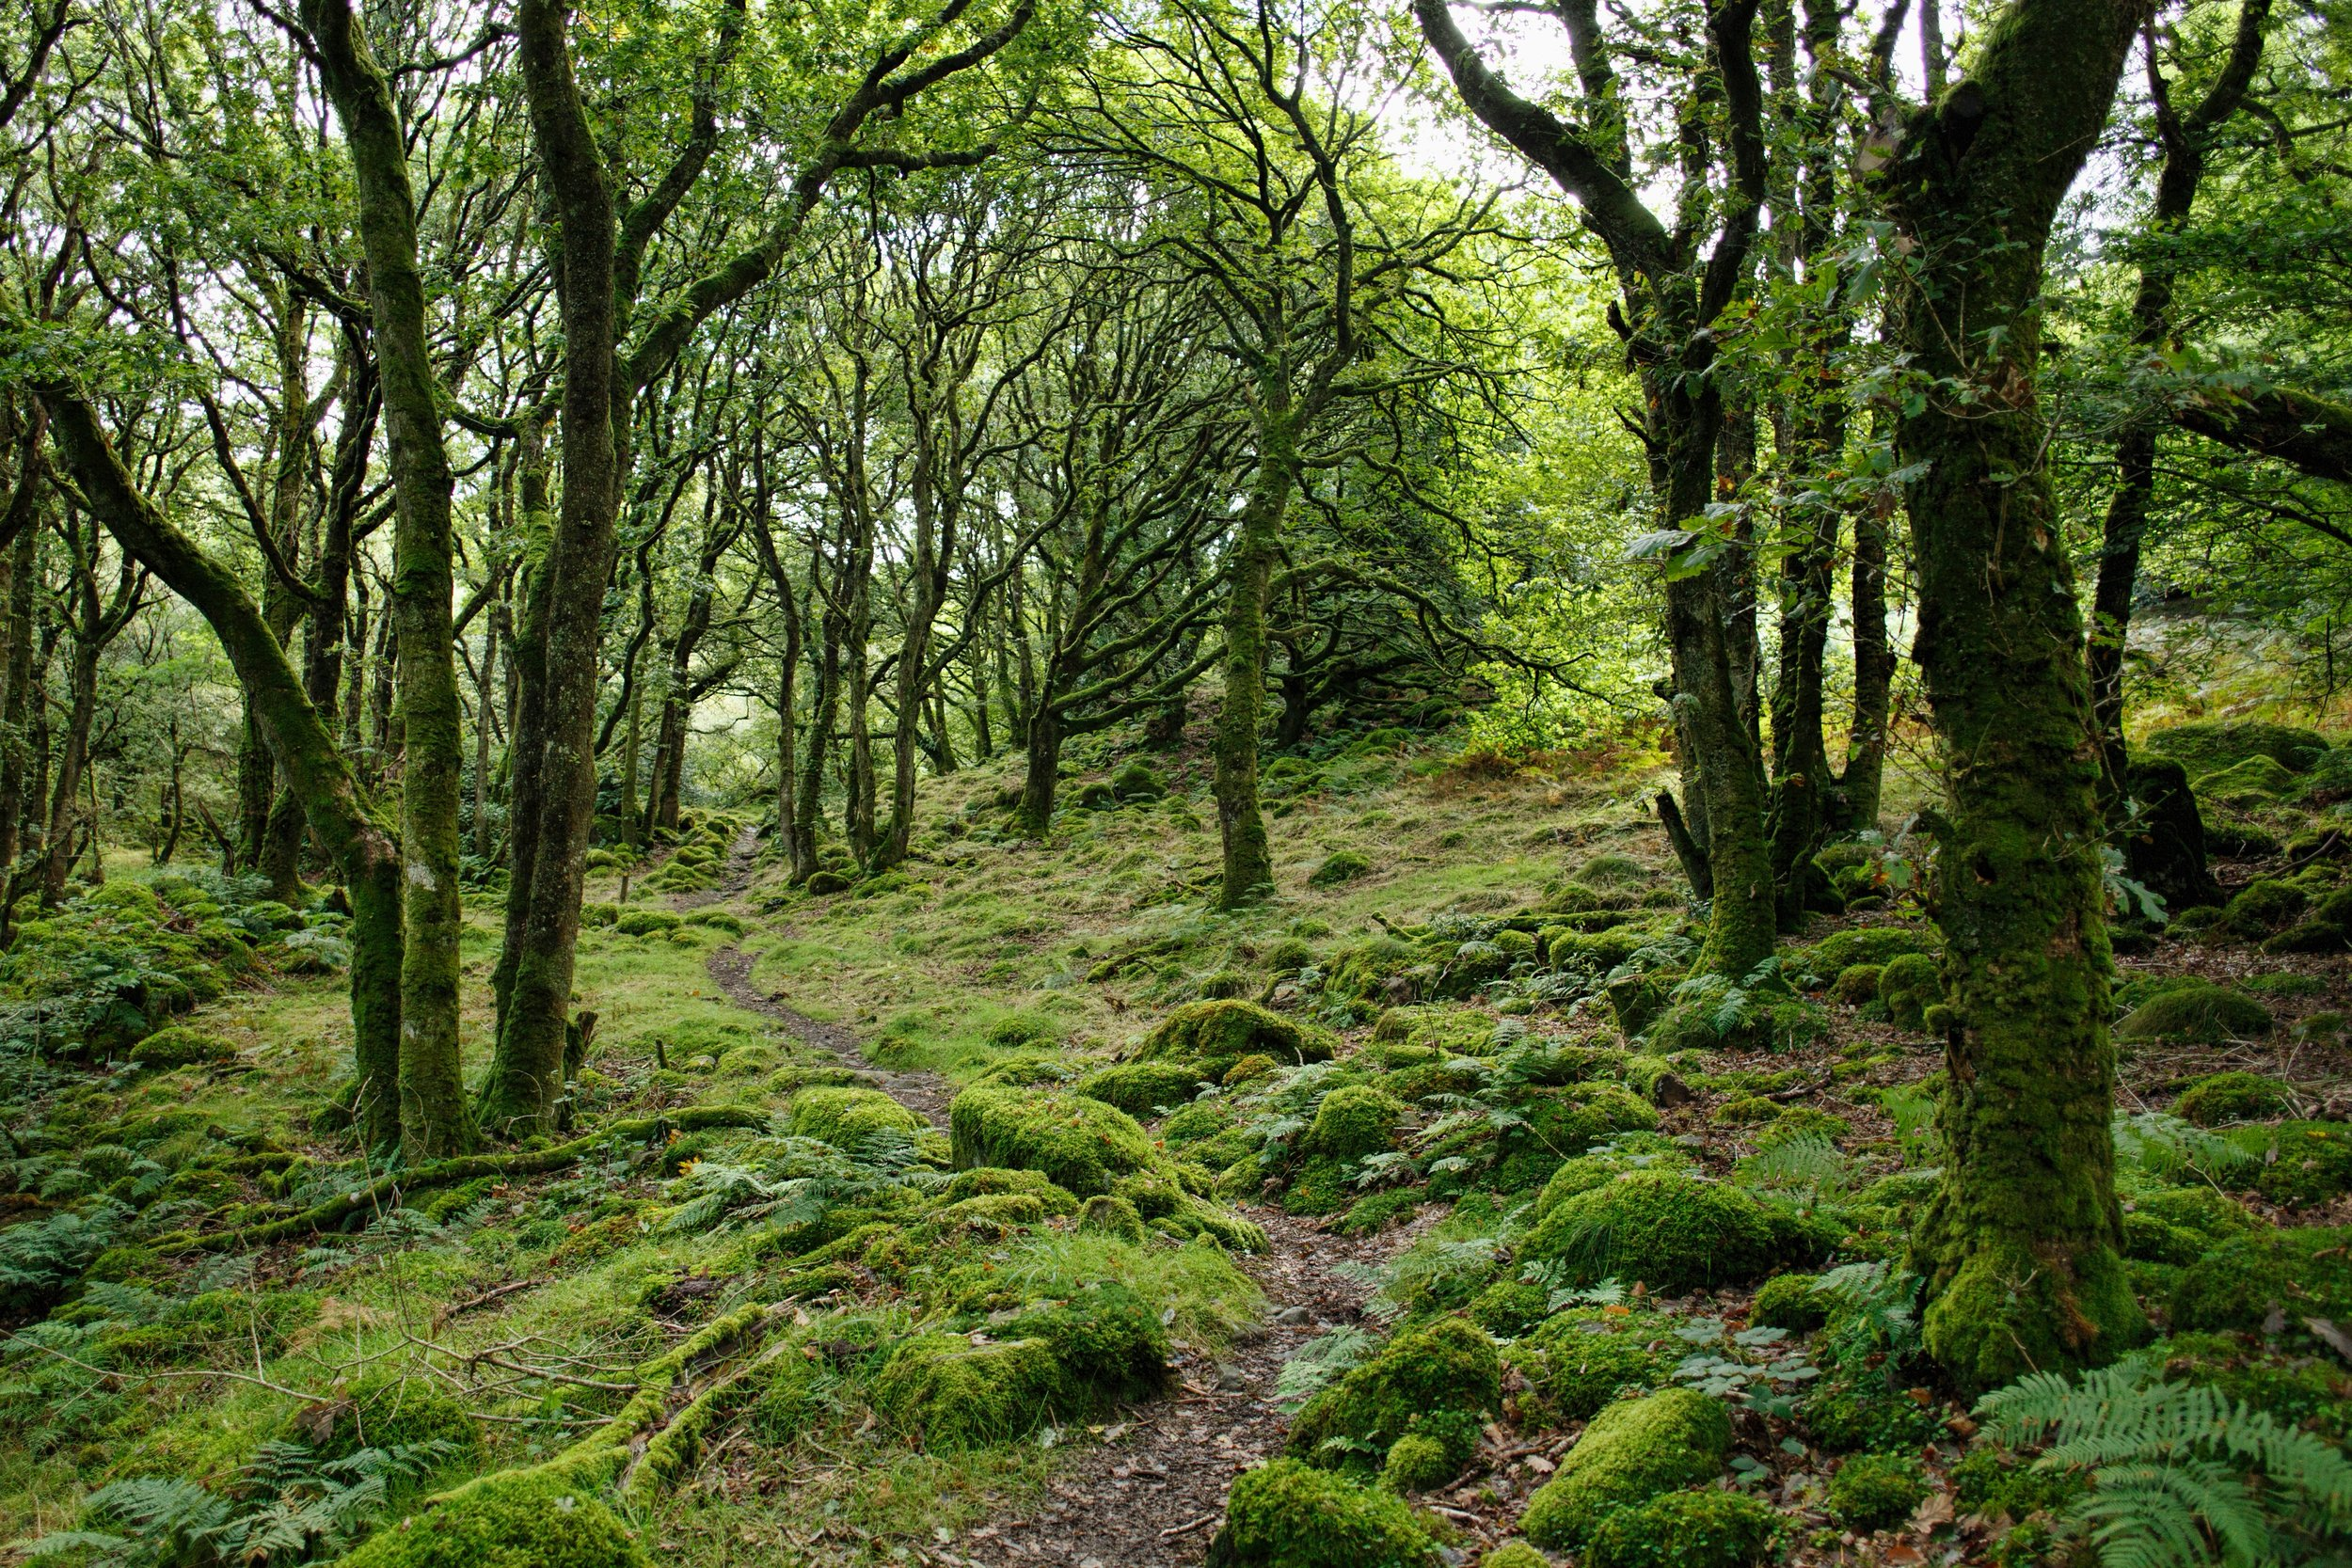 About - Find out more about the art of forest therapy walks and how they can benefit you.